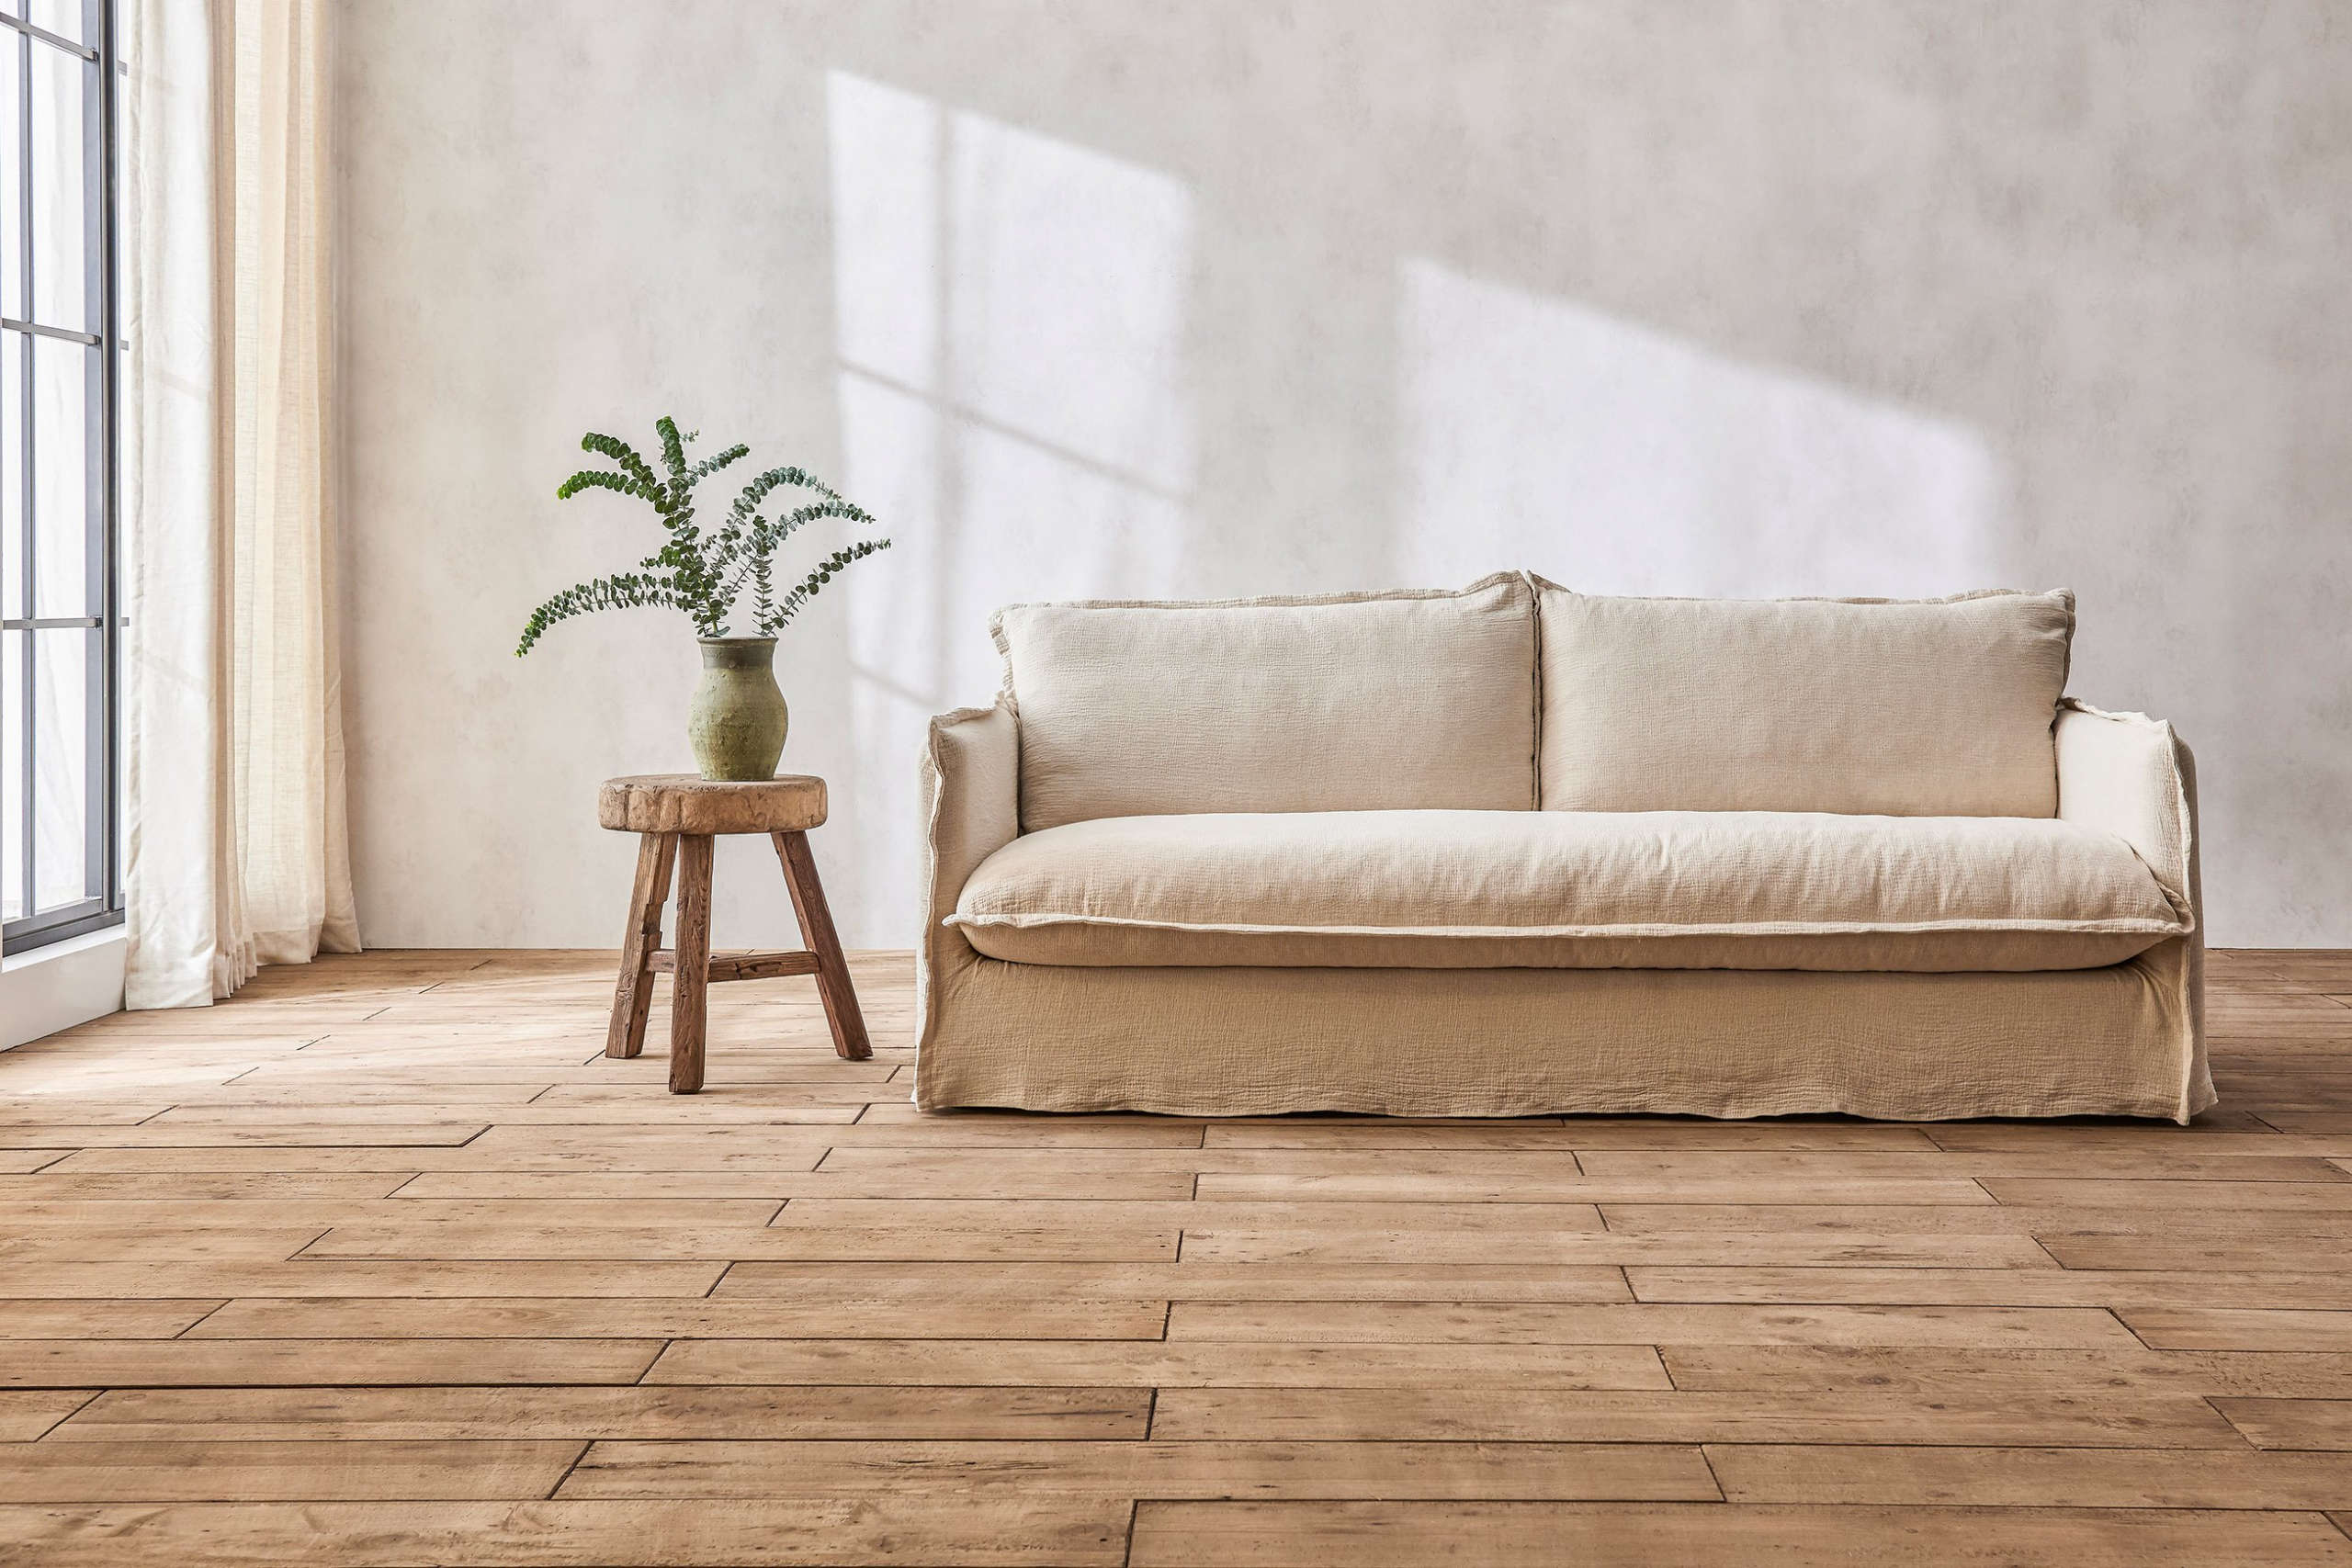 The Neva Sofa from Six Penny is available in white cotton is $